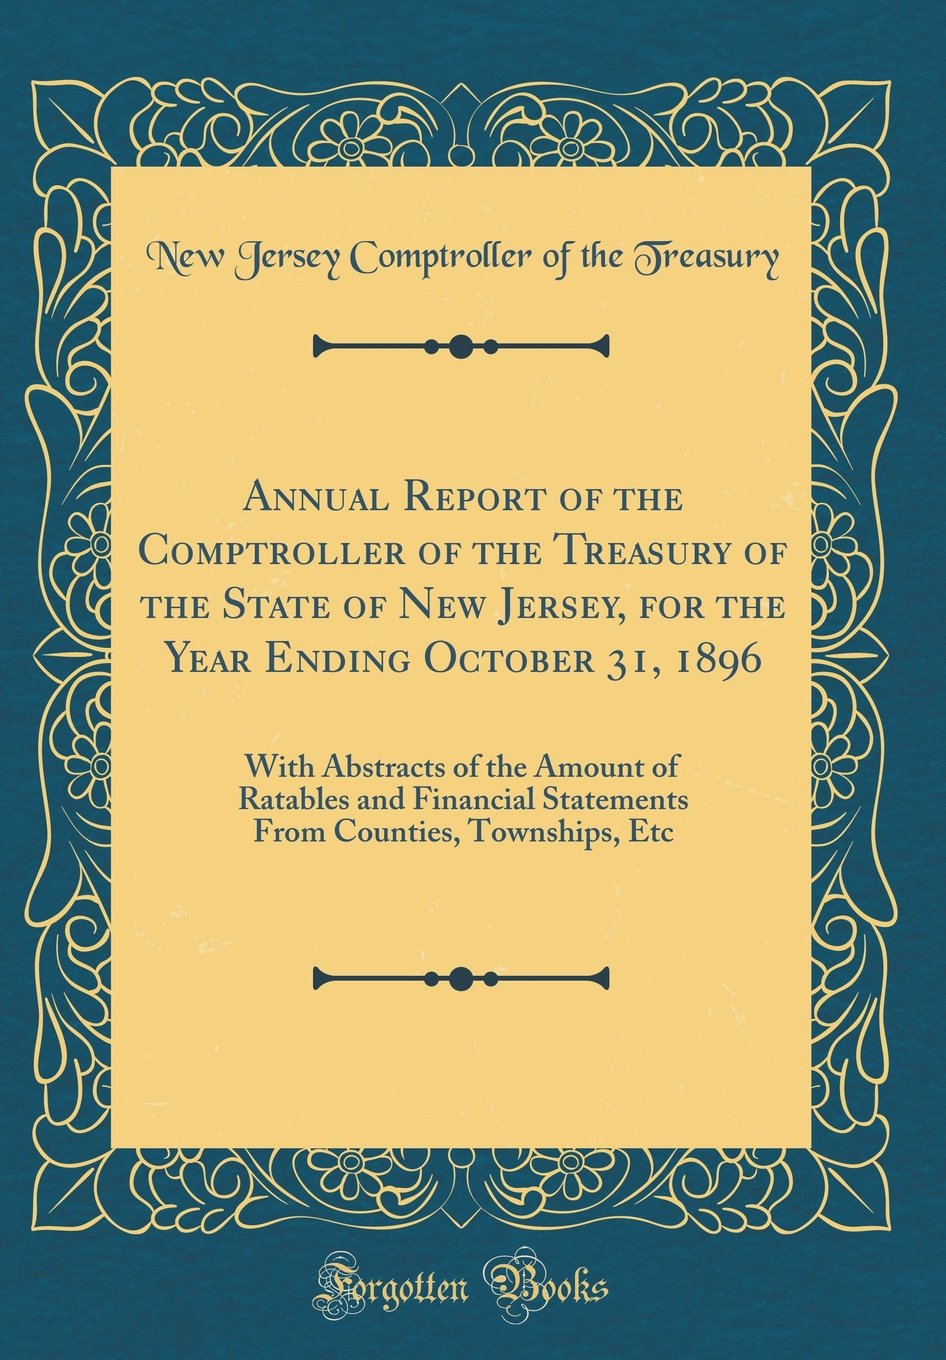 Annual Report of the Comptroller of the Treasury of the State of New Jersey, for the Year Ending October 31, 1896: With Abstracts of the Amount of ... Counties, Townships, Etc (Classic Reprint) pdf